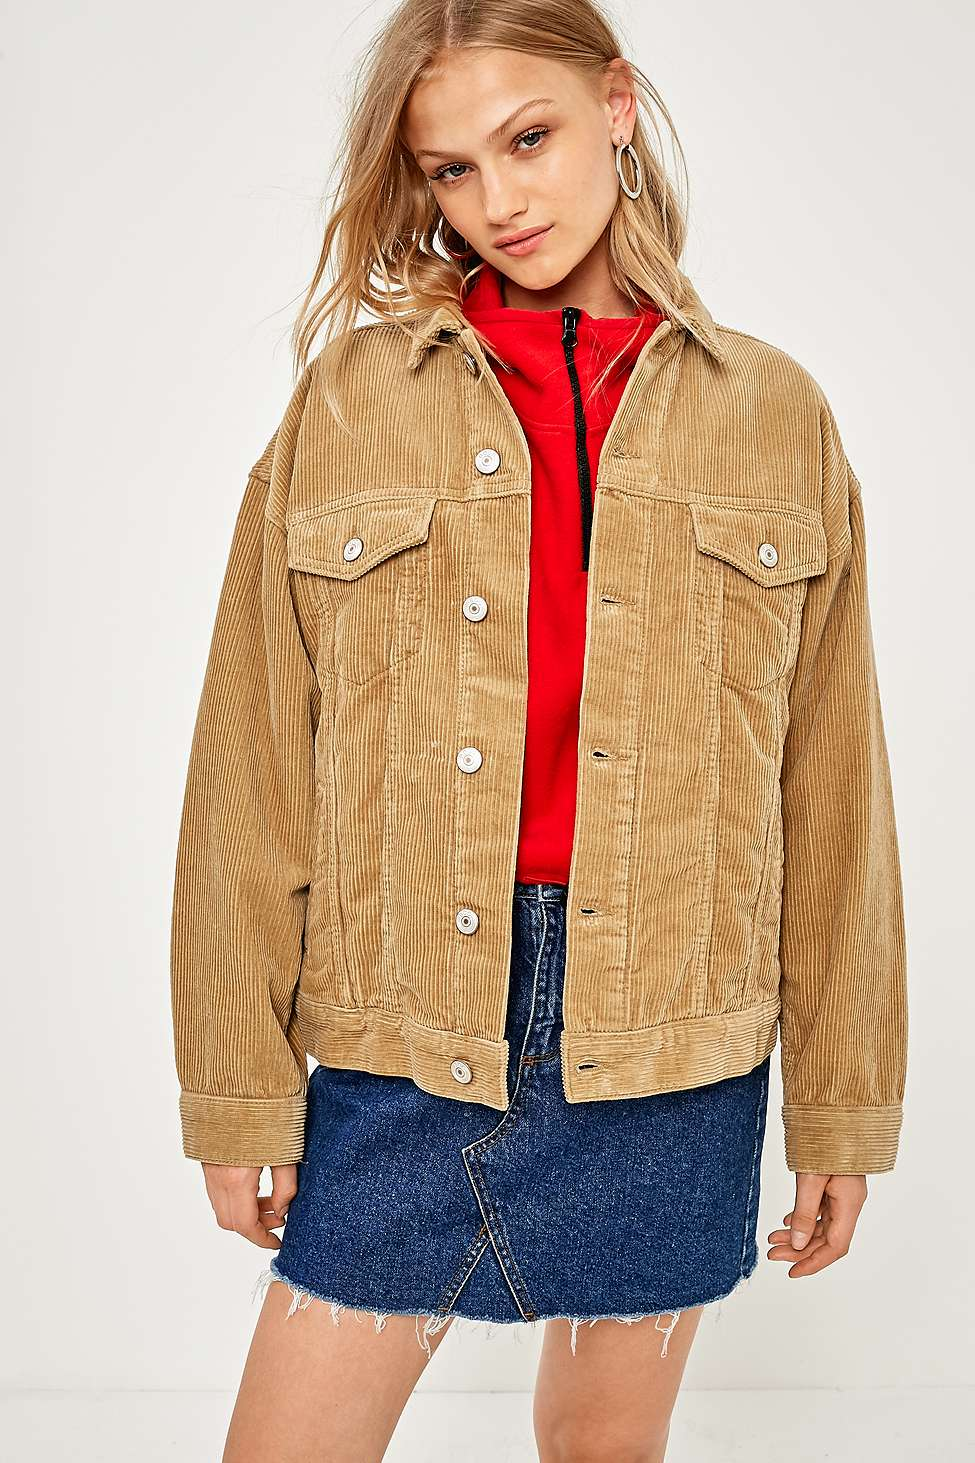 BDG Corduroy Jacket | Urban Outfitters